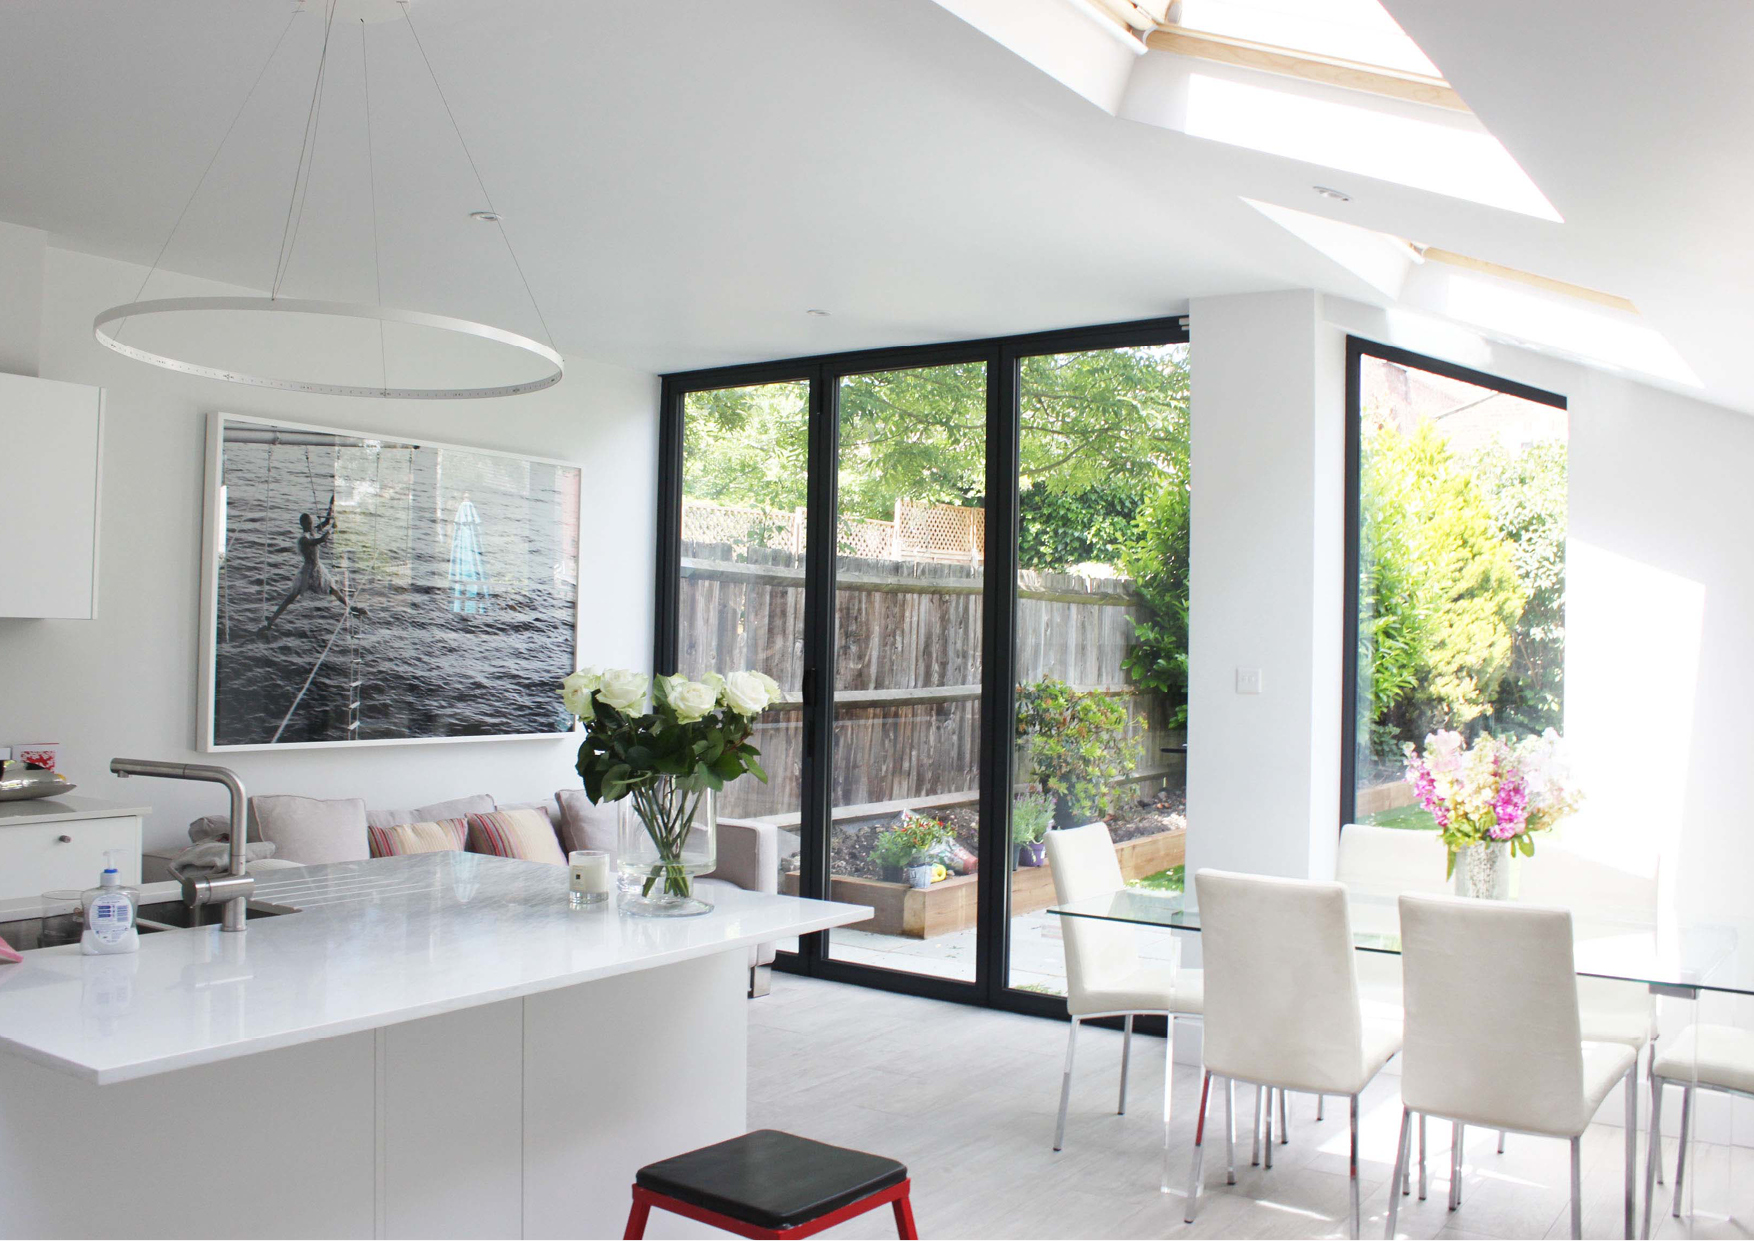 A refurbishment and extension of a Victorian house in Queens Park, London.